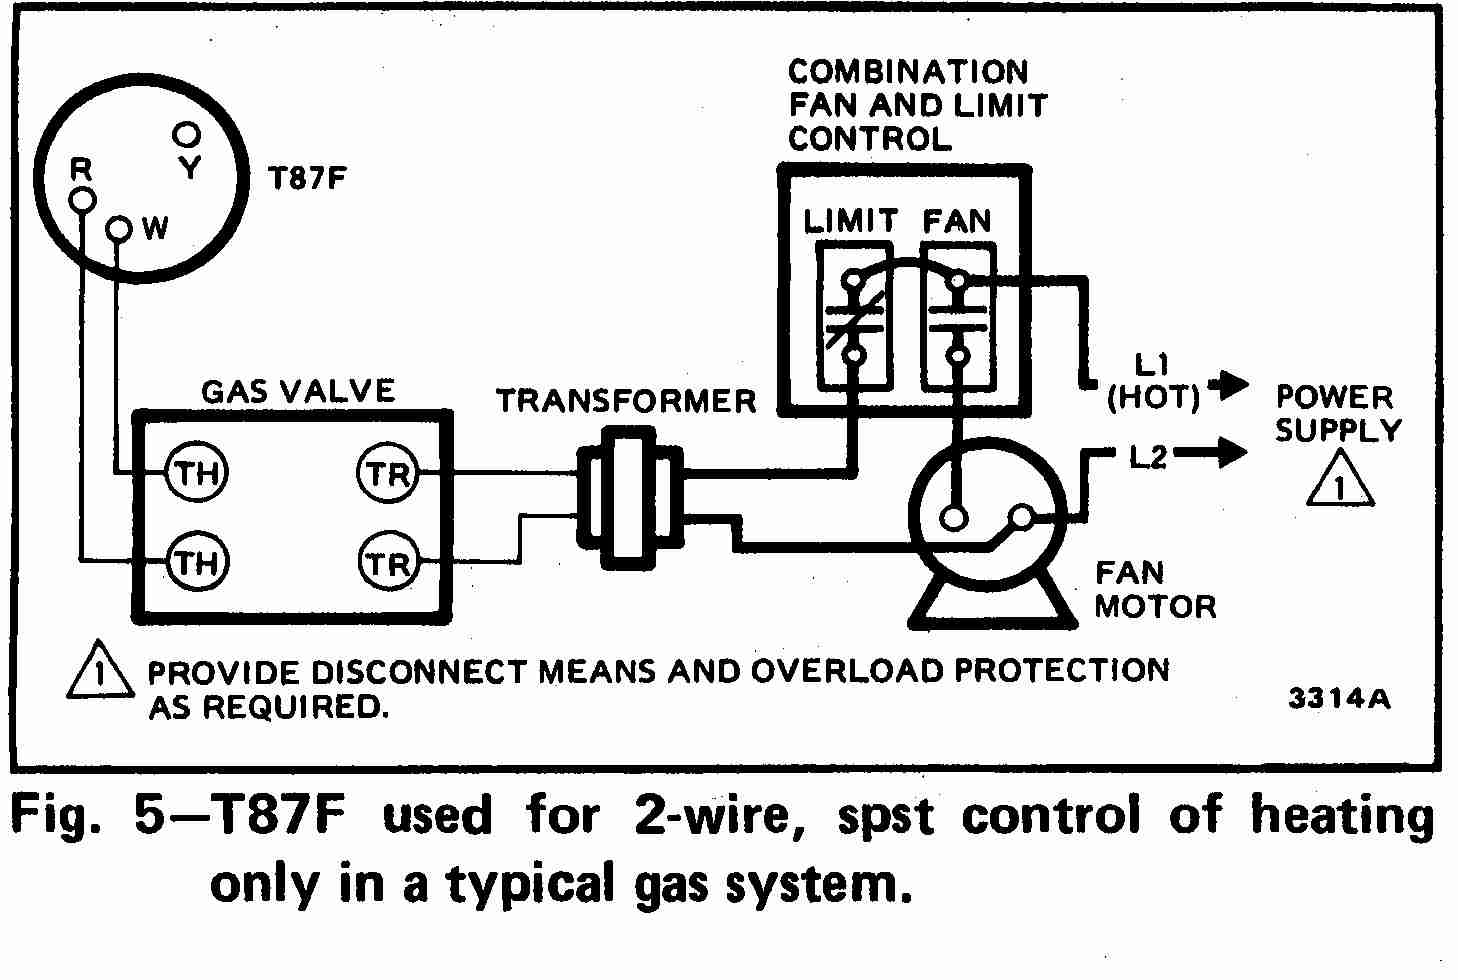 TT_T87F_0002_2Wg_DJF control valve wiring diagram electrical wiring diagram \u2022 free white-rodgers fan control center wiring diagram at bayanpartner.co